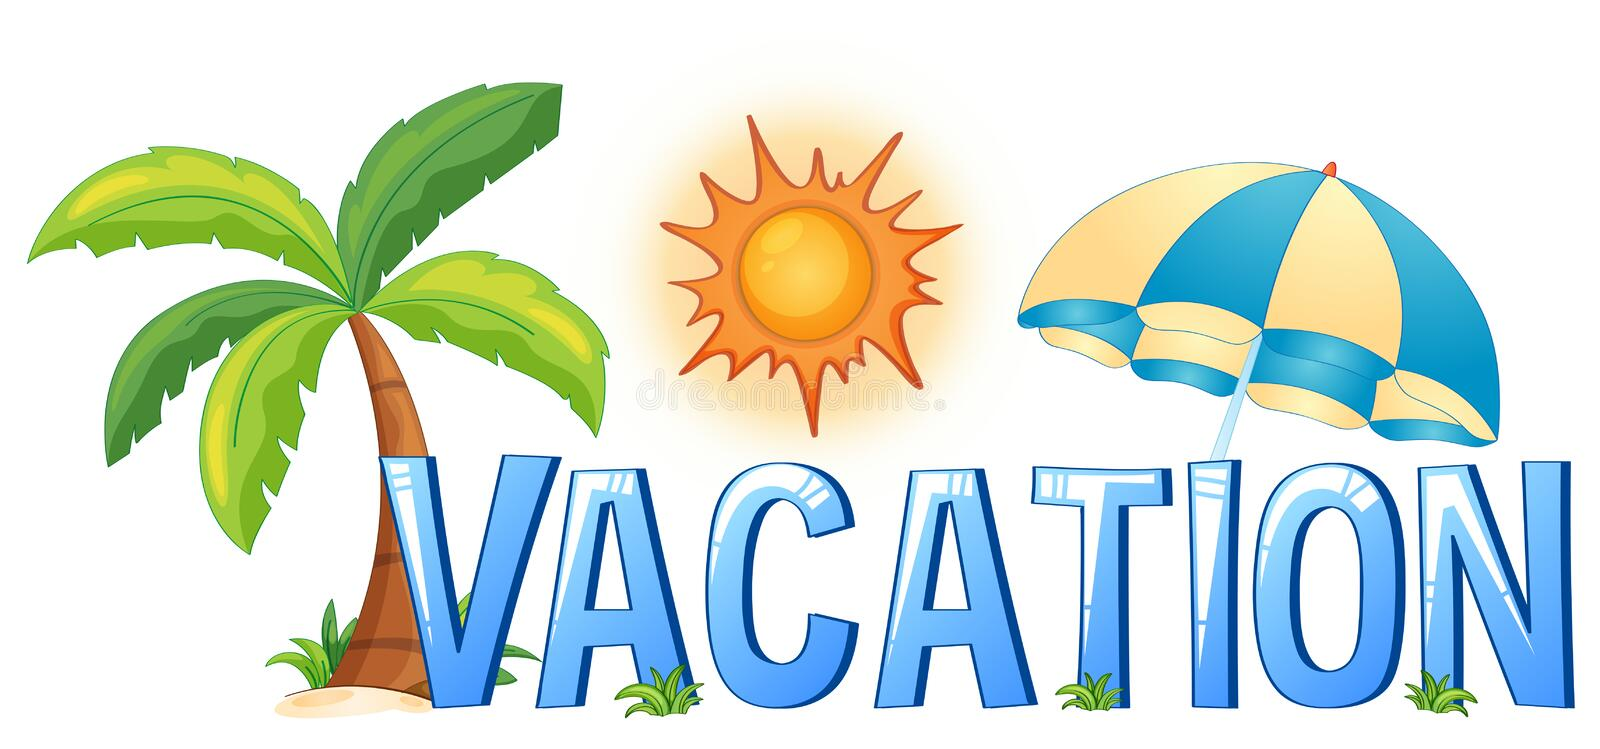 Font Design With Word Vacation Stock Vector - Illustration ...